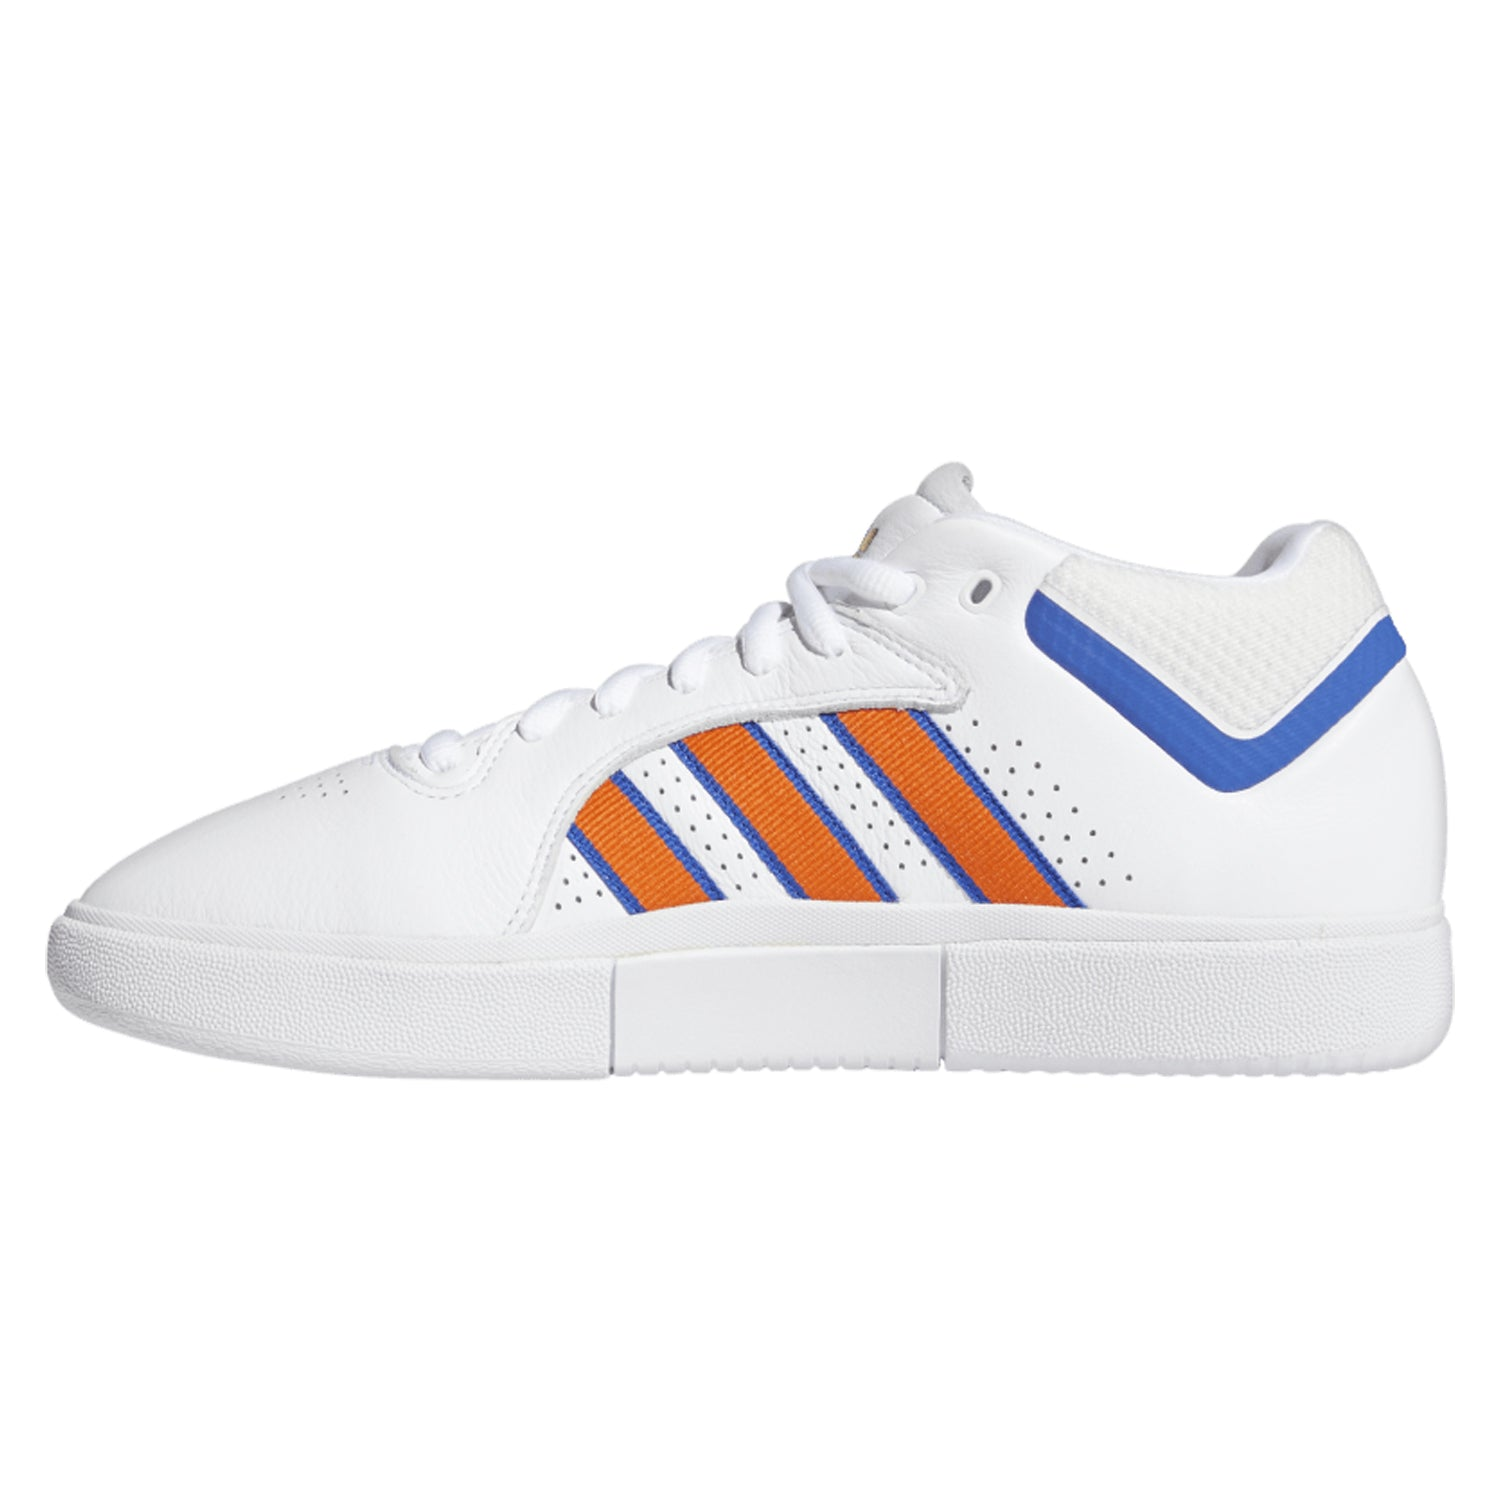 Adidas Tyshawn Pro Model White/Orange/Royal Blue